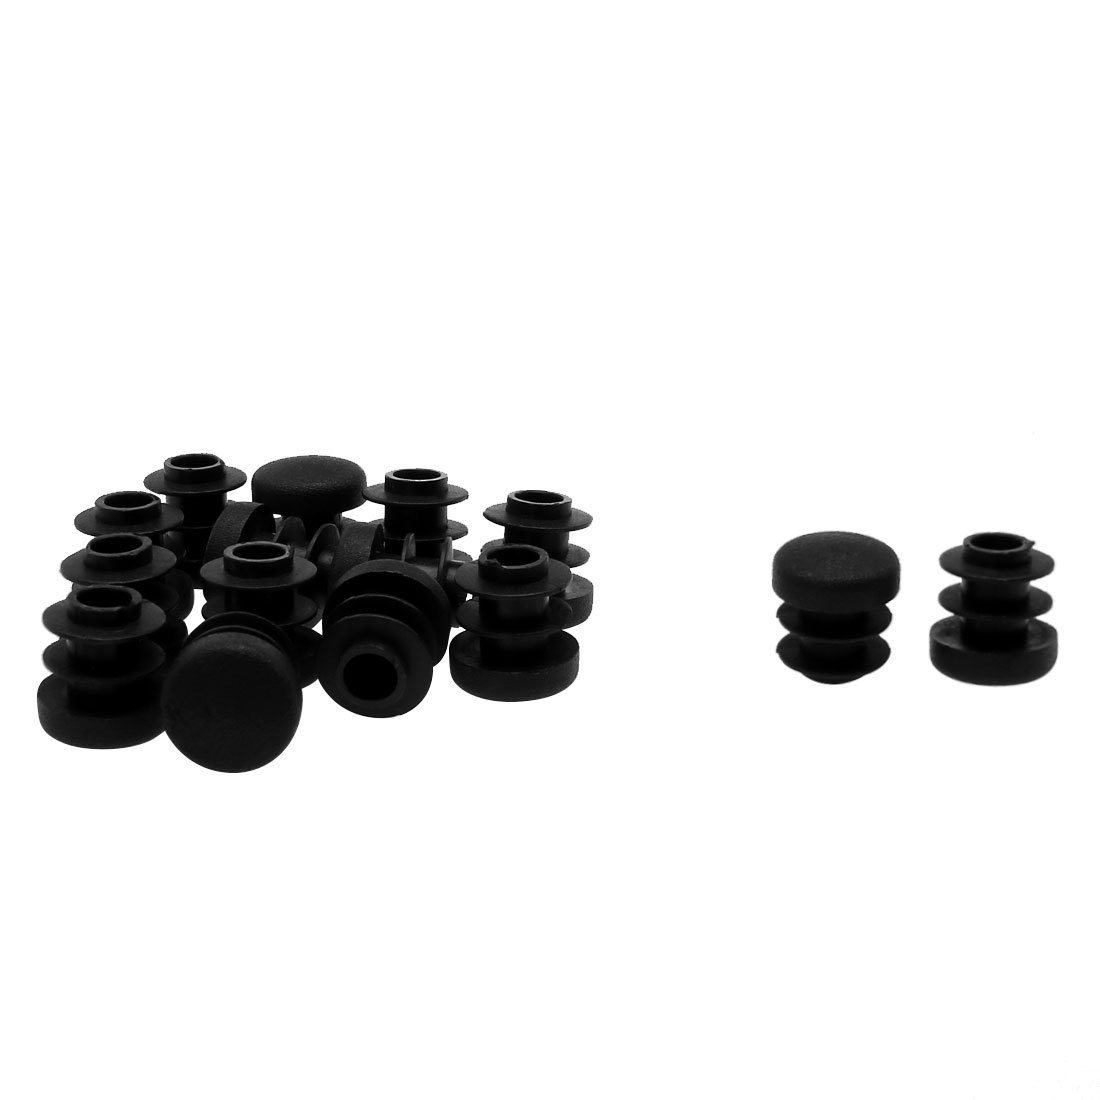 Floor Furniture Chair Cabinet Protector uxcell 3//4 20mm OD Plastic Round Tube Ribbed Inserts End Cover Caps 12pcs 0.67-0.75 Inner Dia